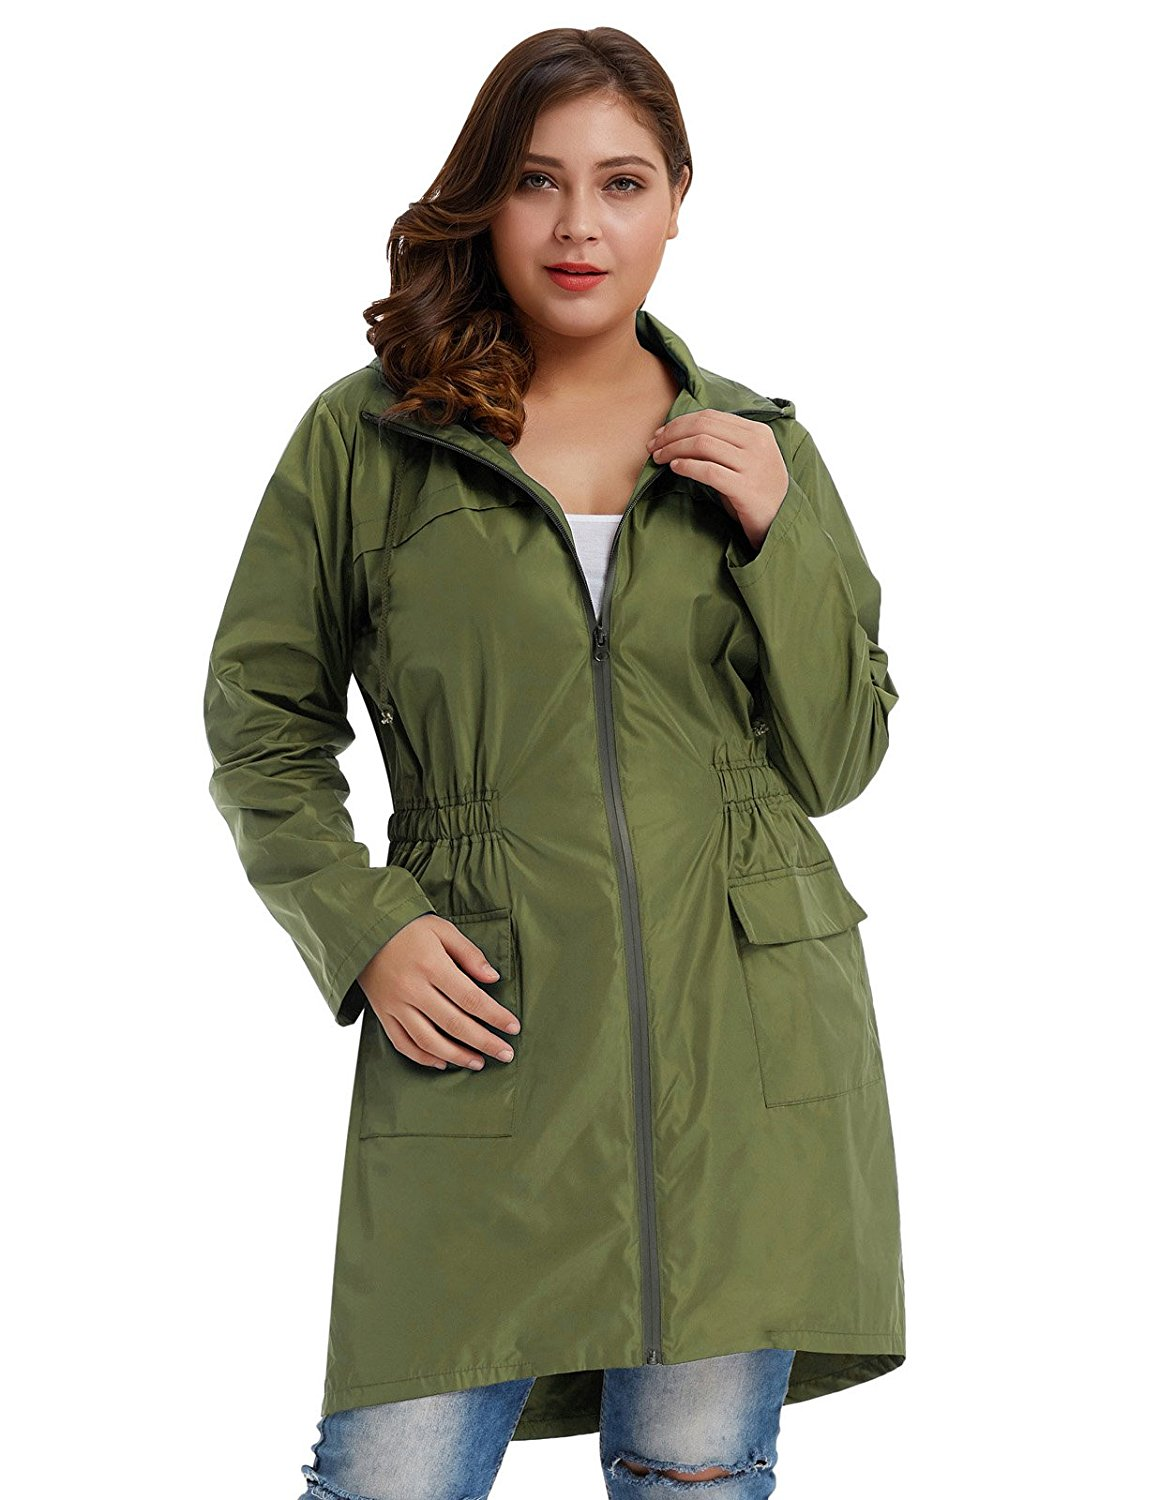 3a86ae58ae9 Get Quotations · Hanna Nikole Women Plus Size Lightweight Raincoat Travel  Hoodie Rain Jacket HN0037